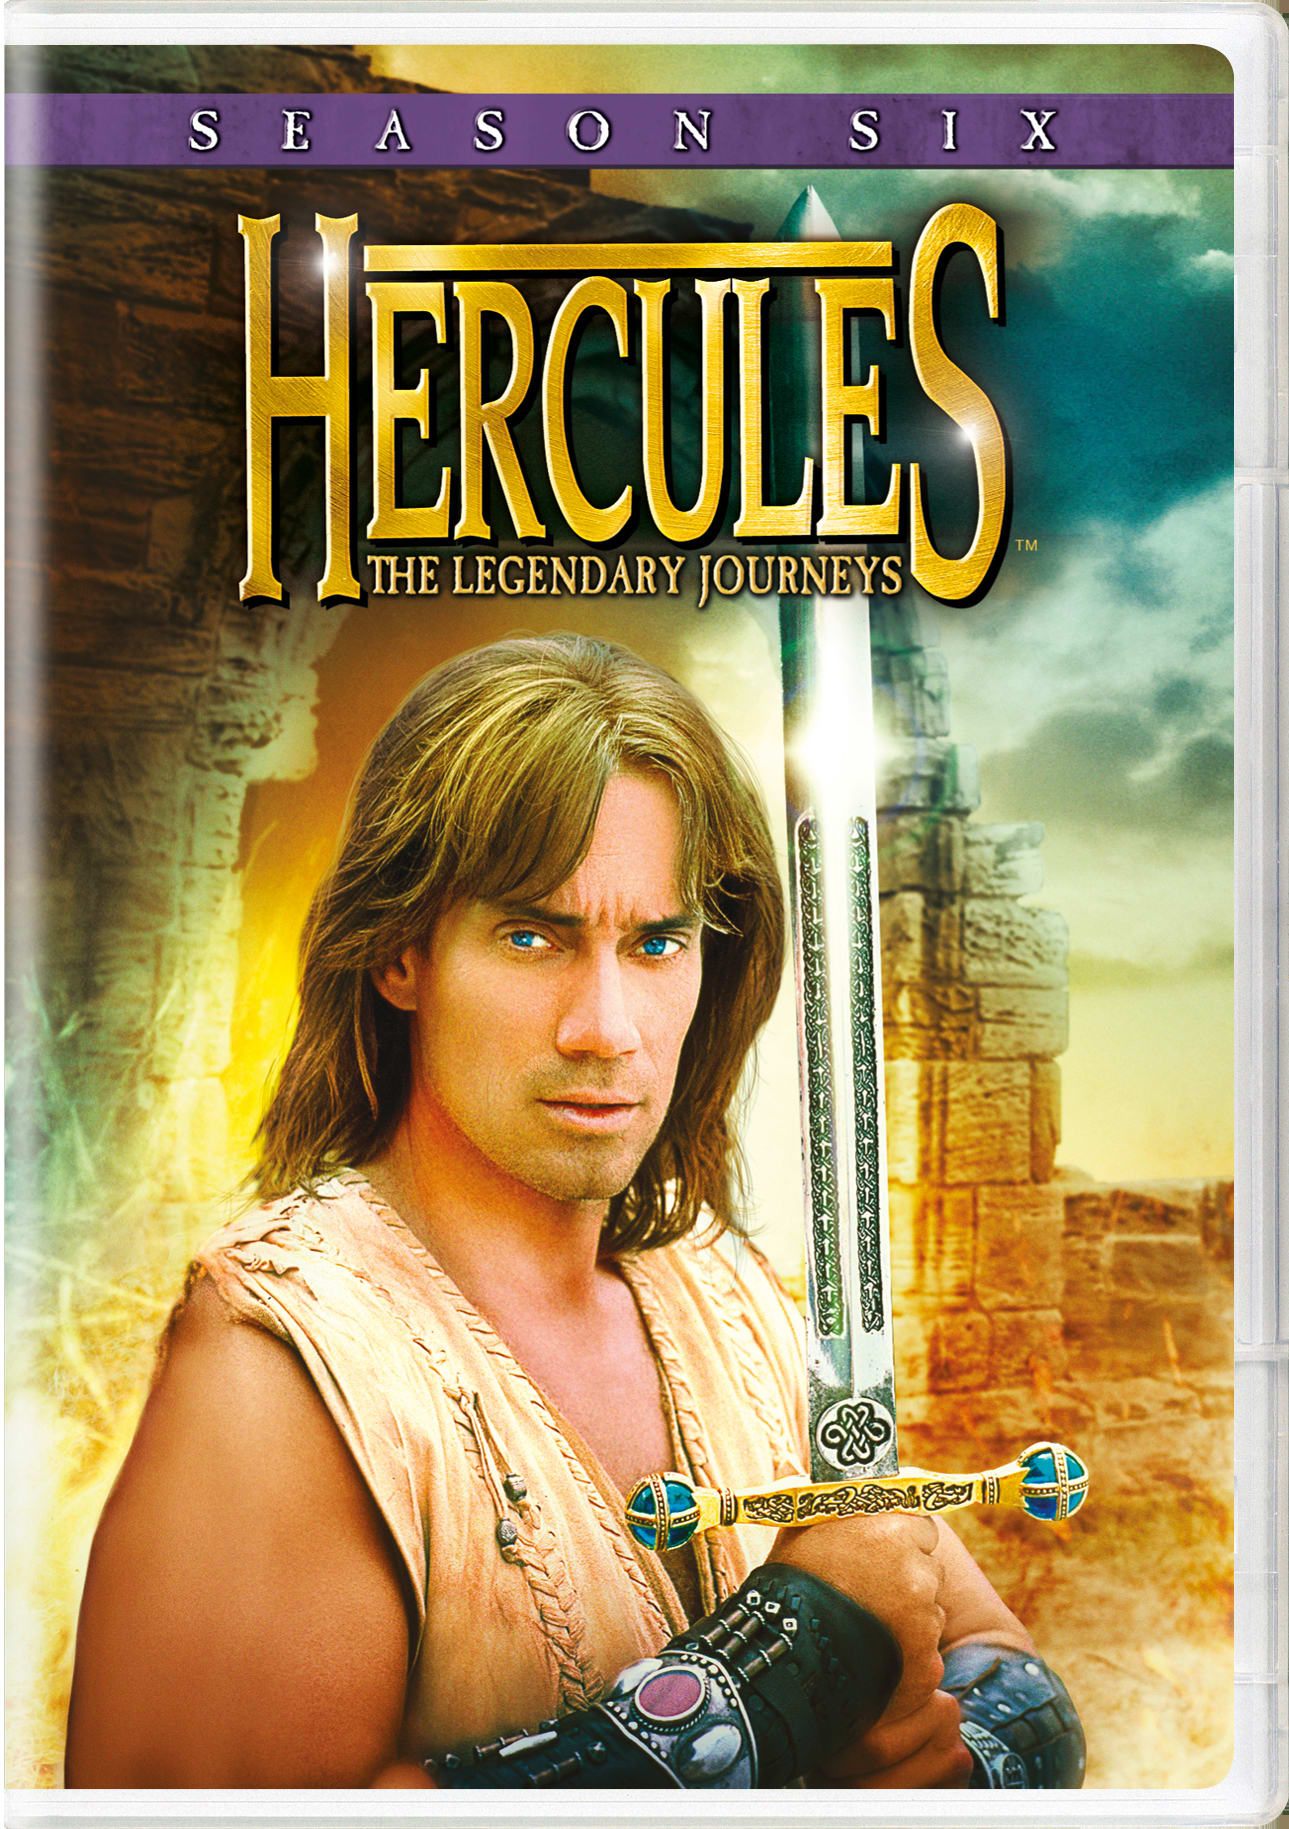 Hercules - The Legendary Journeys: Season Six [DVD]